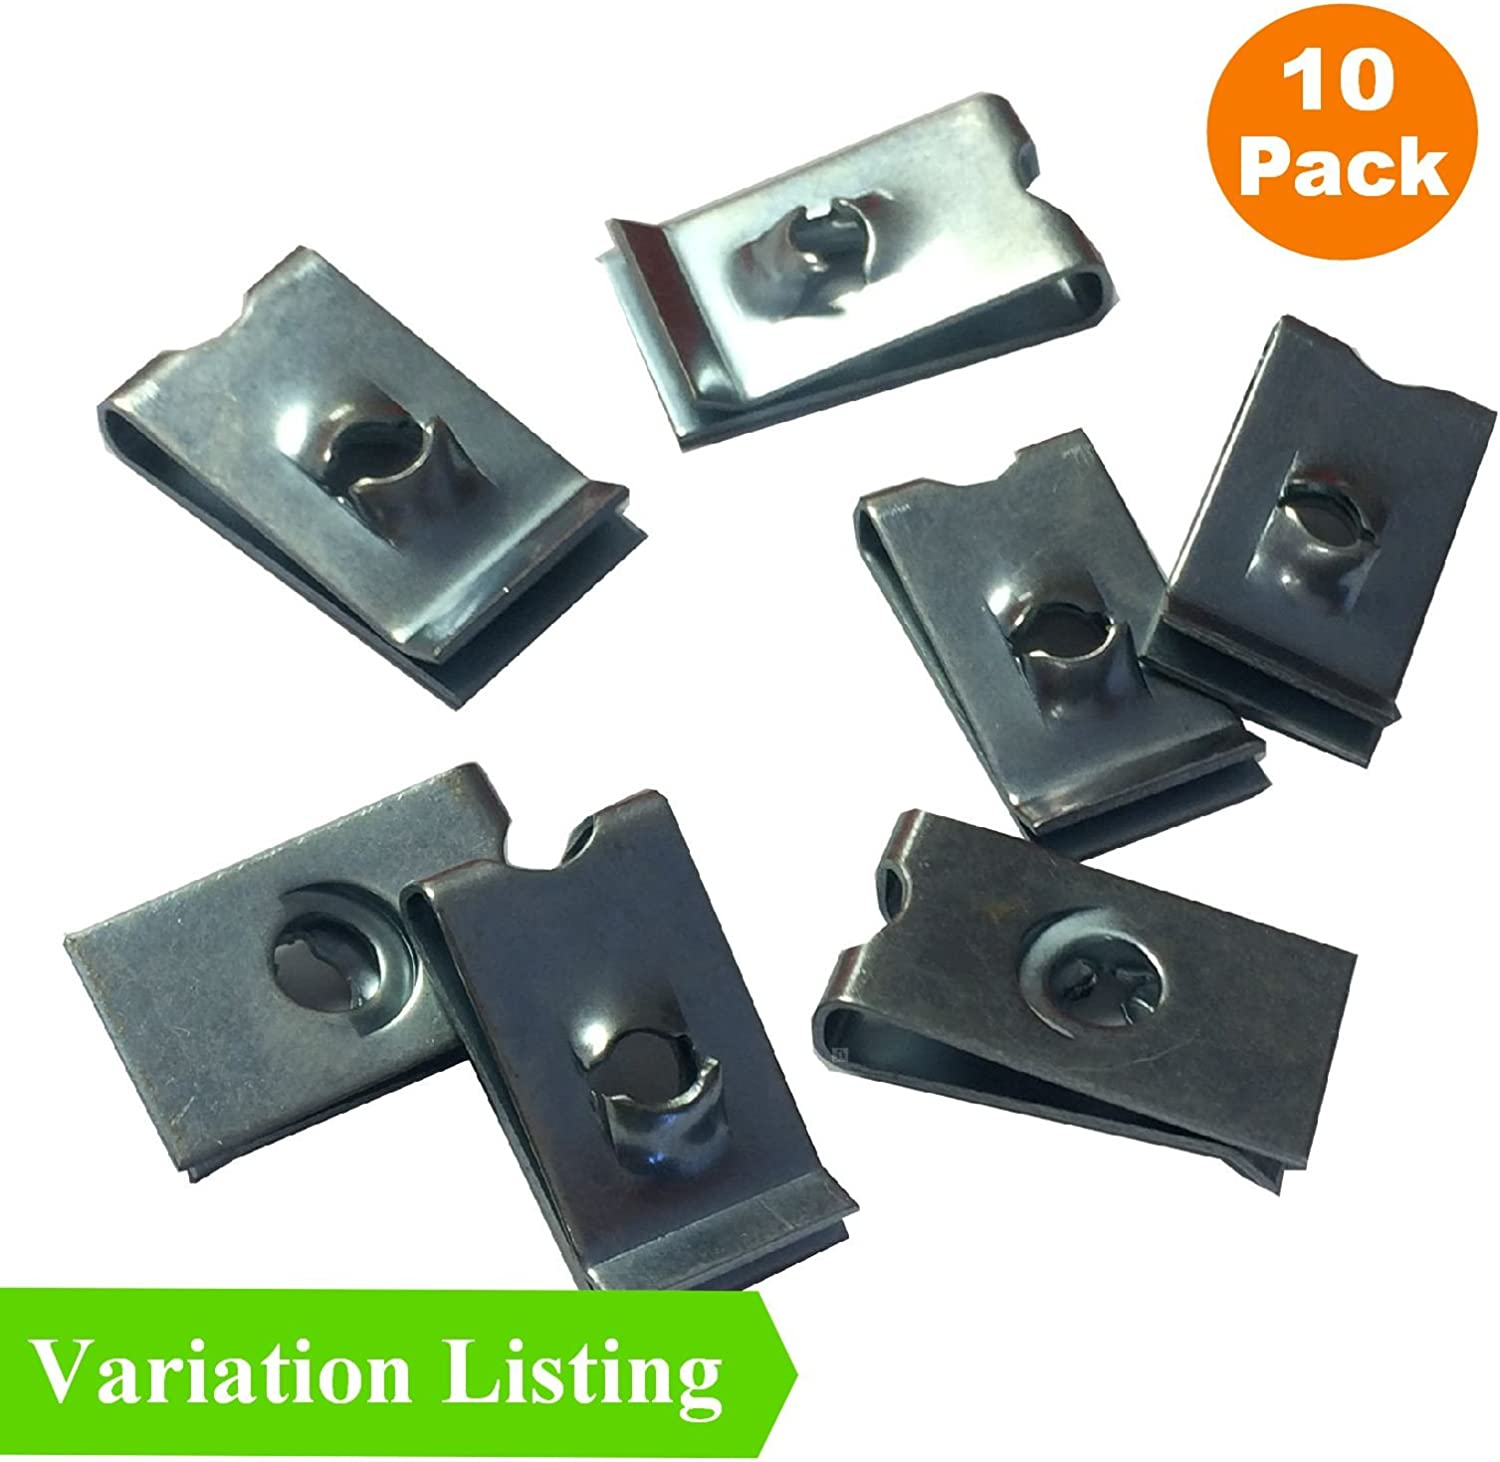 10x Push in Fastener Trim Panel Rivet Clips 6-8 mm Voiture Ford